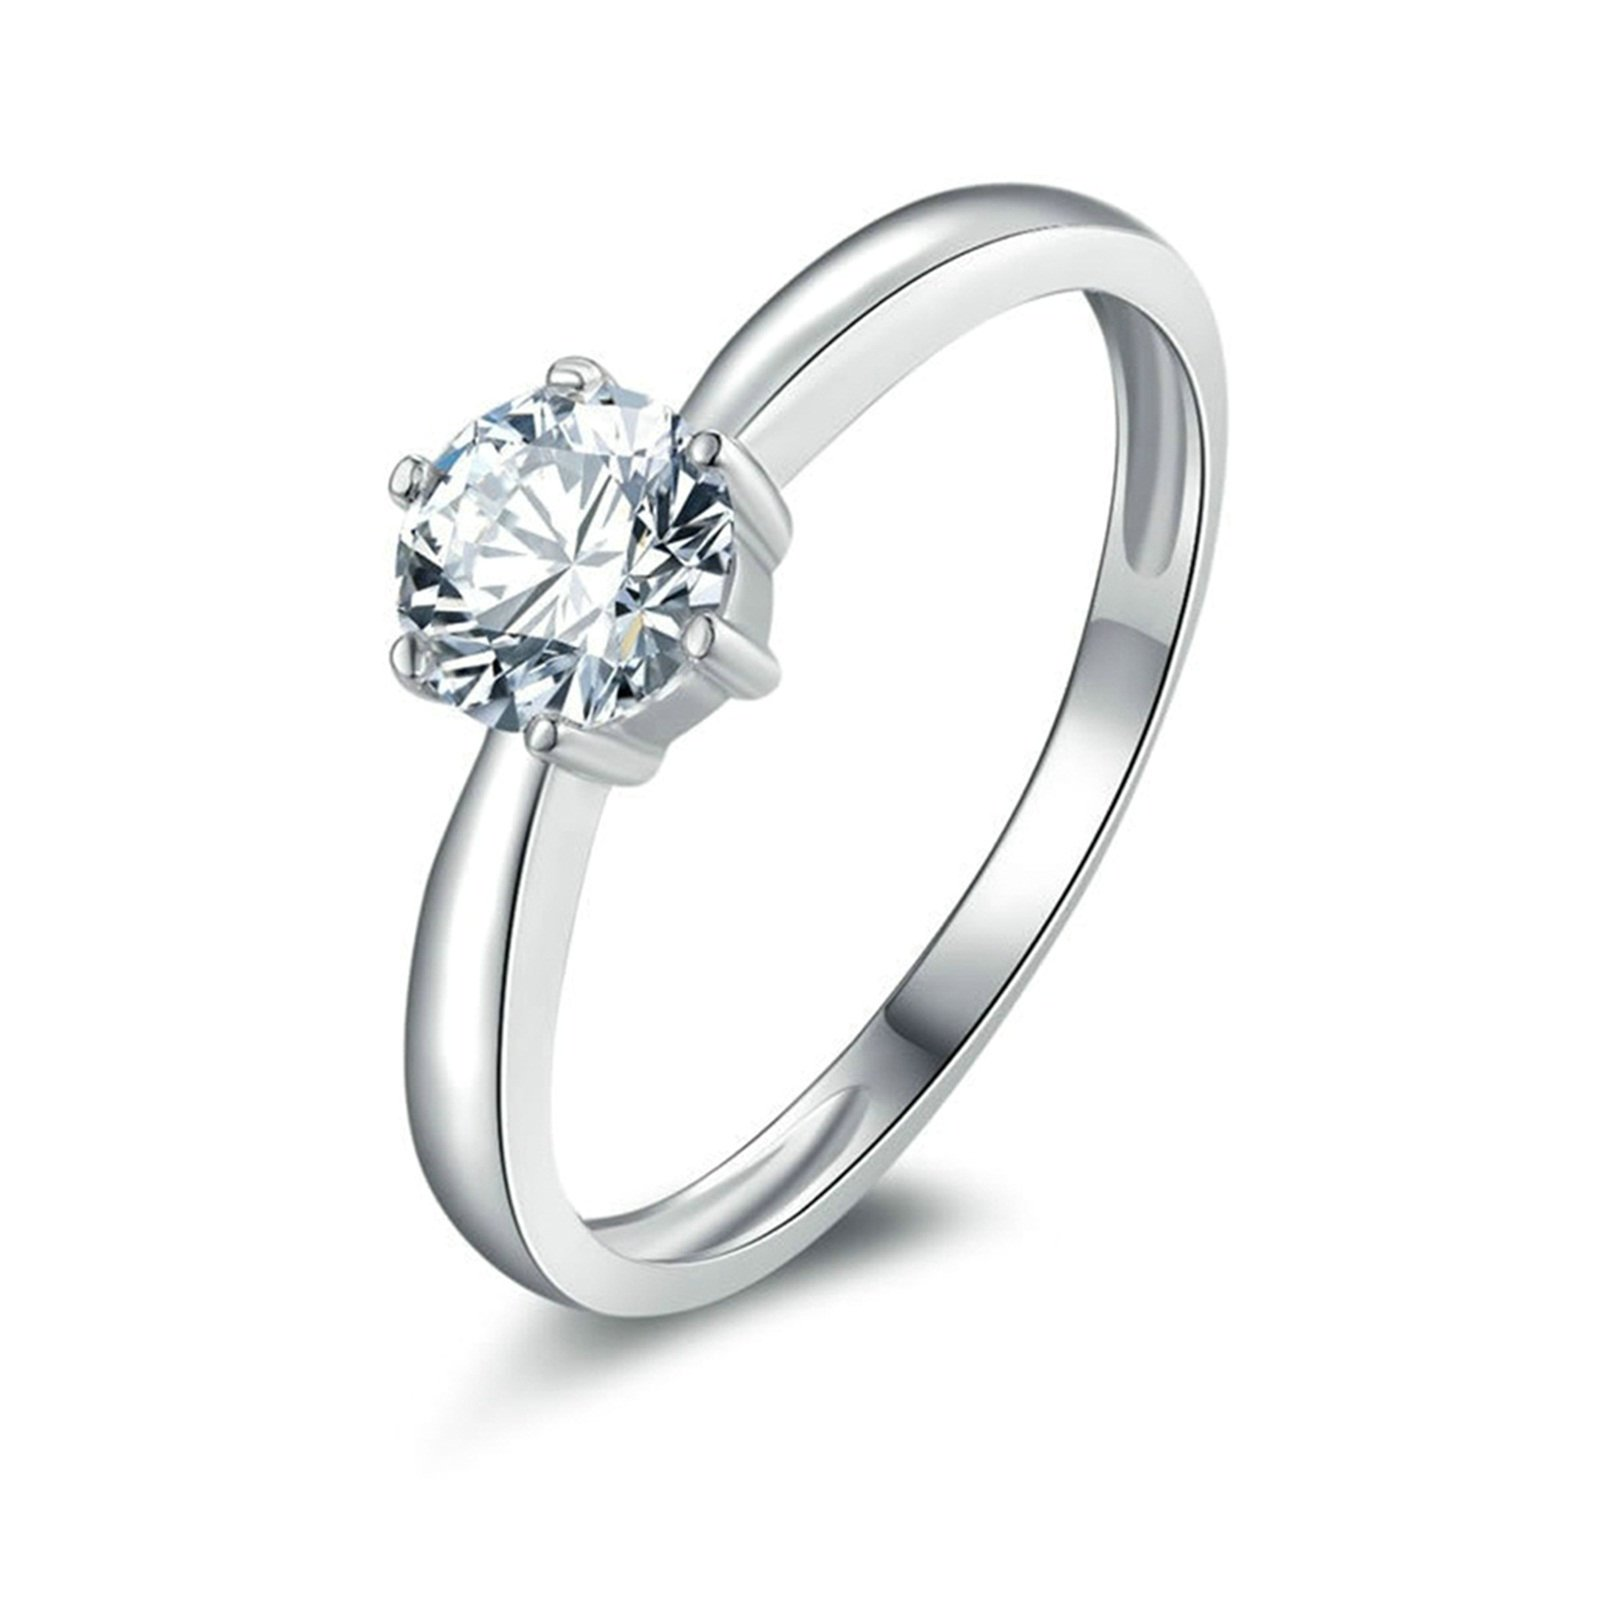 Daesar Promise Rings for Her Customize 6-Prong Setting Round Cubic Zirconia Ring Size 11